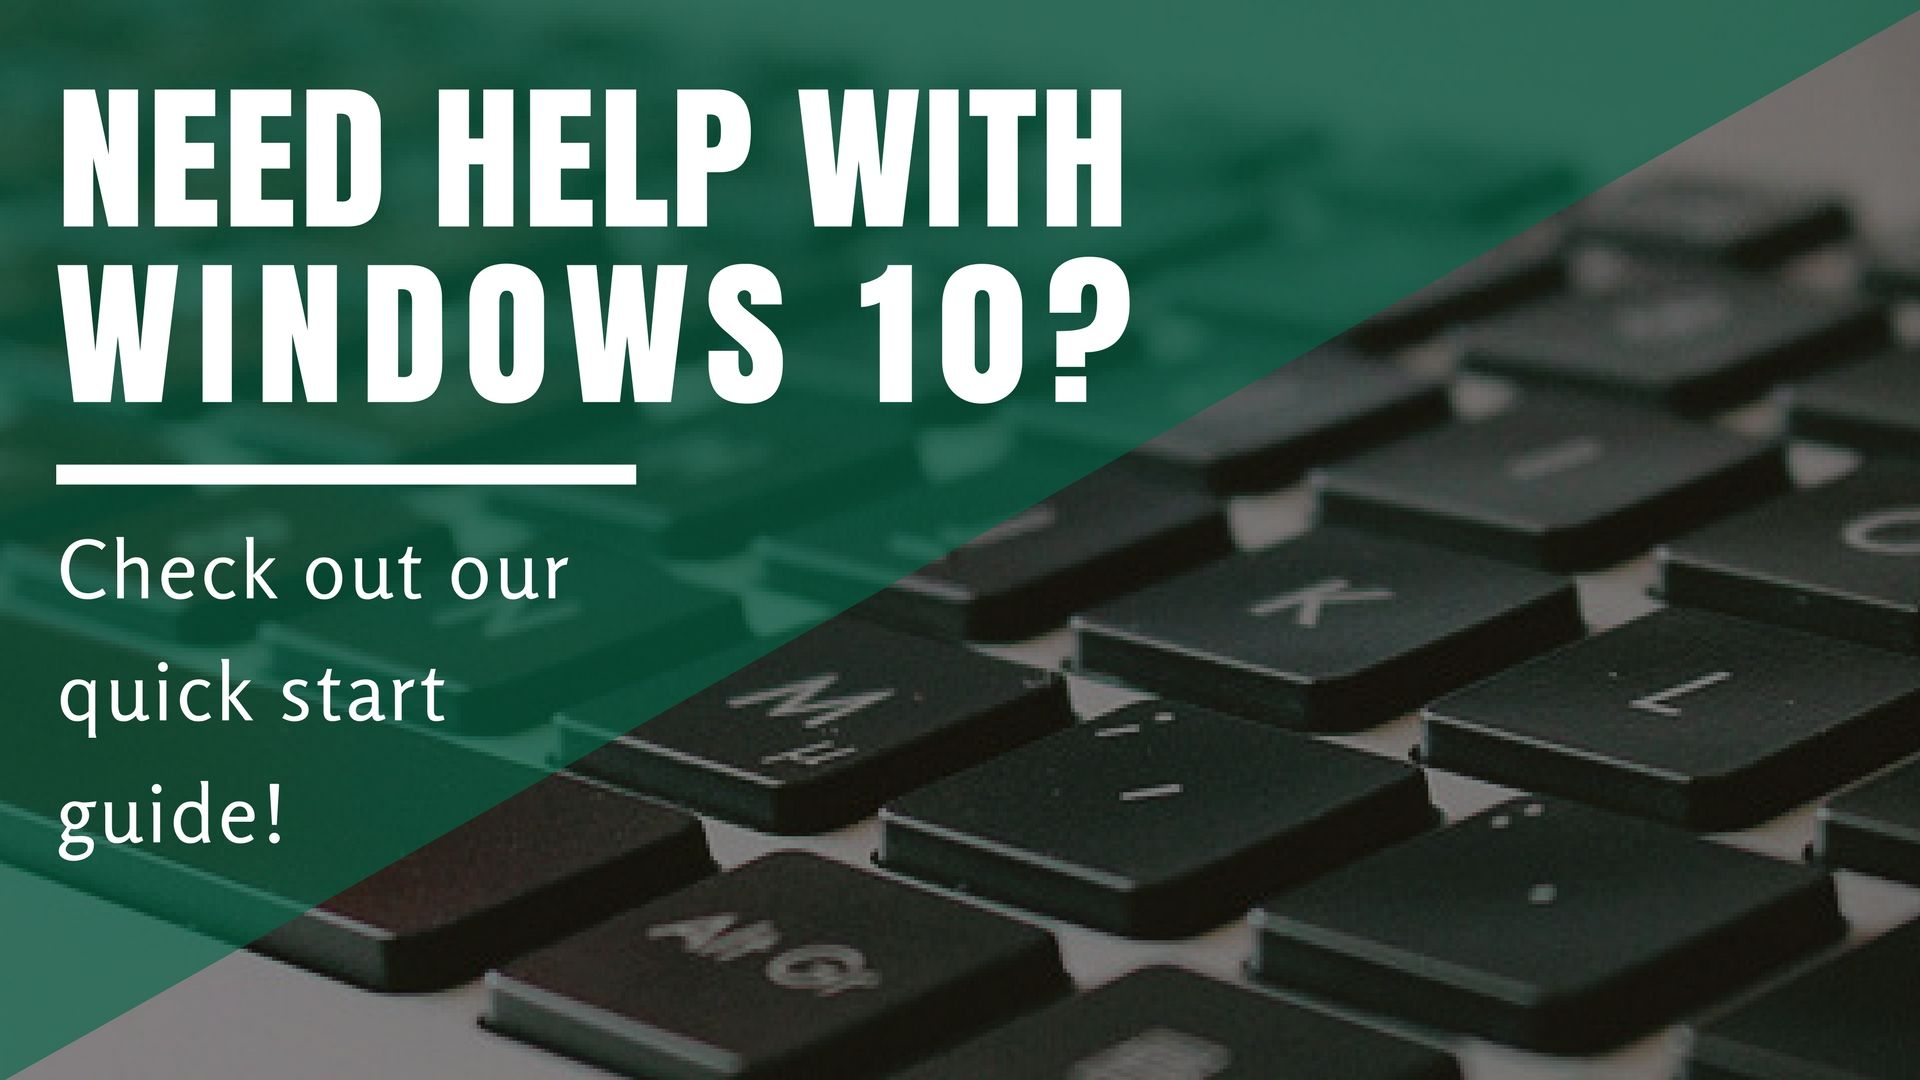 Windows 10 Quick Start Guide